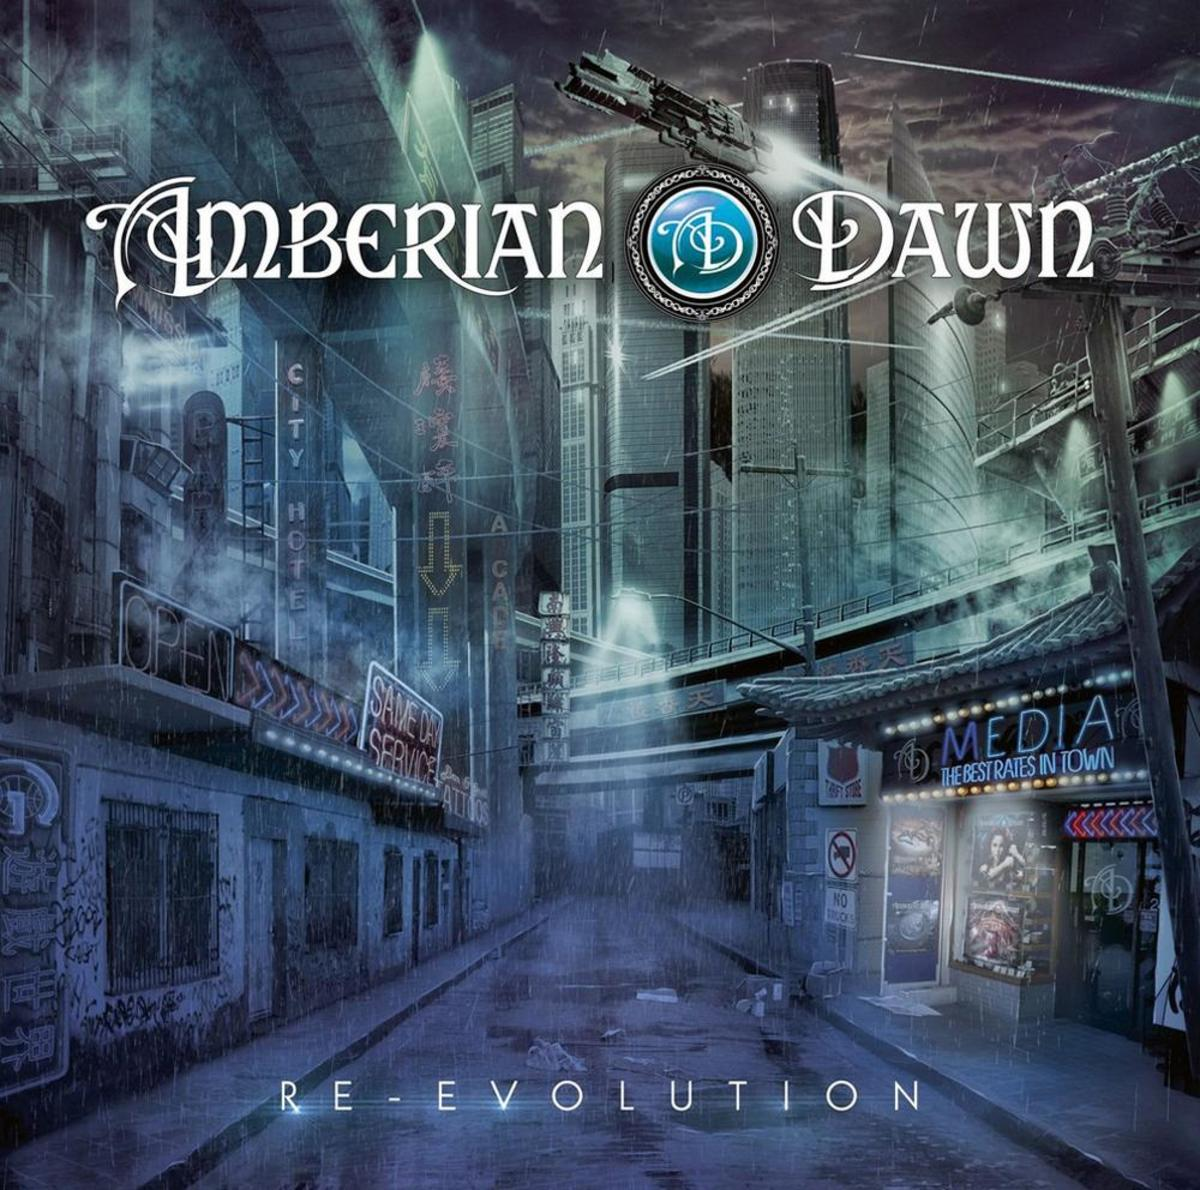 How Did the Band Amberian Dawn Cope After the Departure of Heidi Parvianen With the Album Re-Evolution?